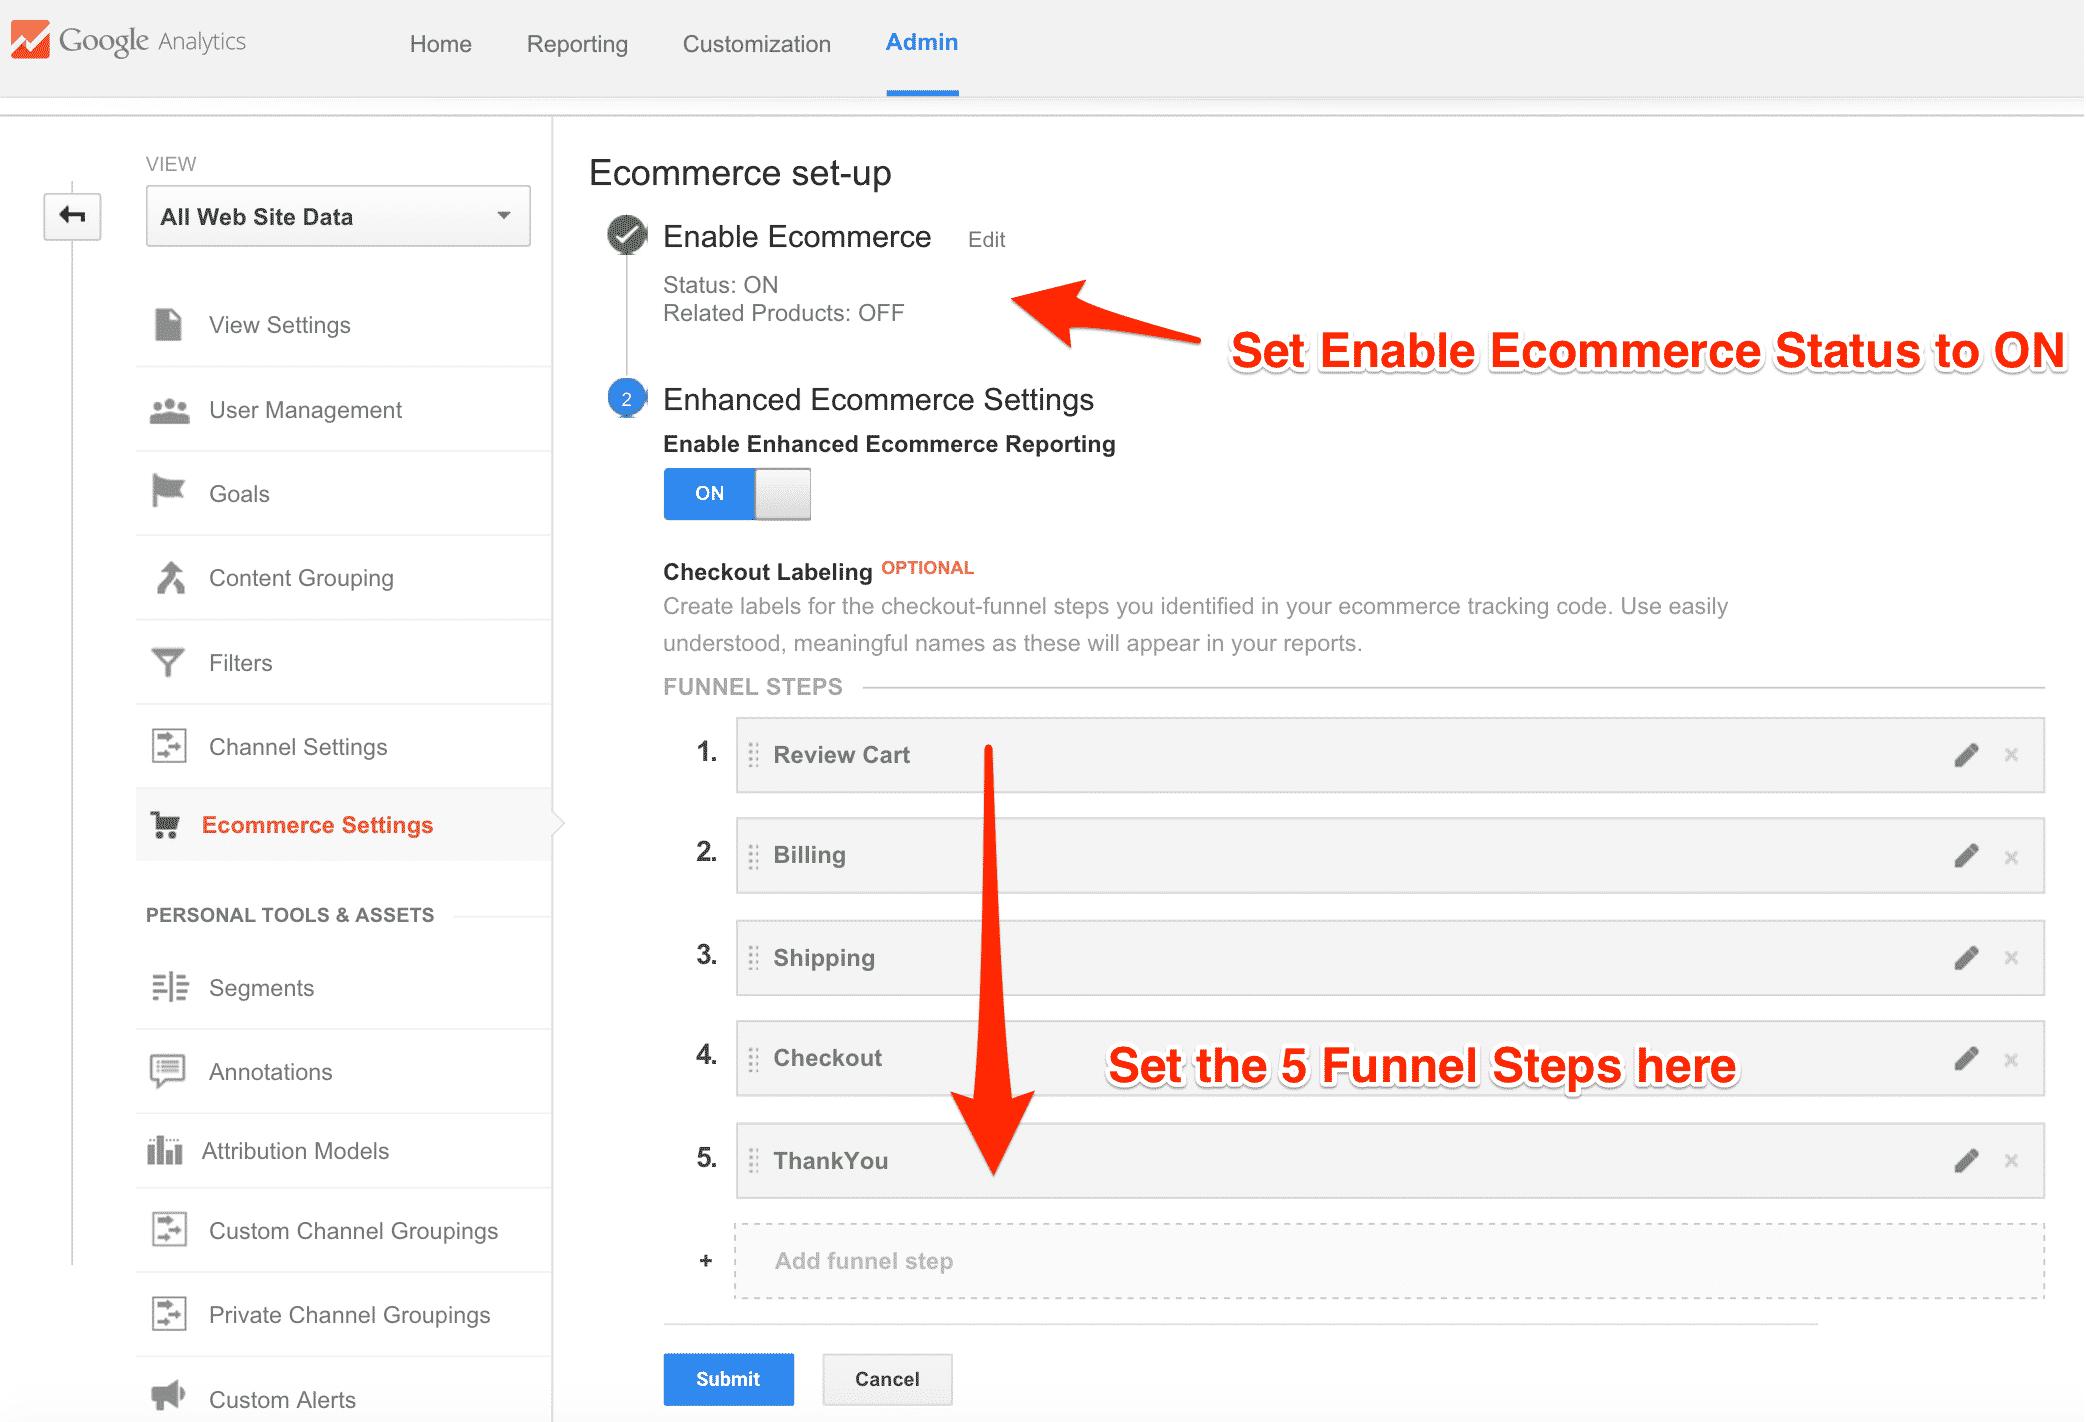 Ecommerce funnel steps and Enable status to ON